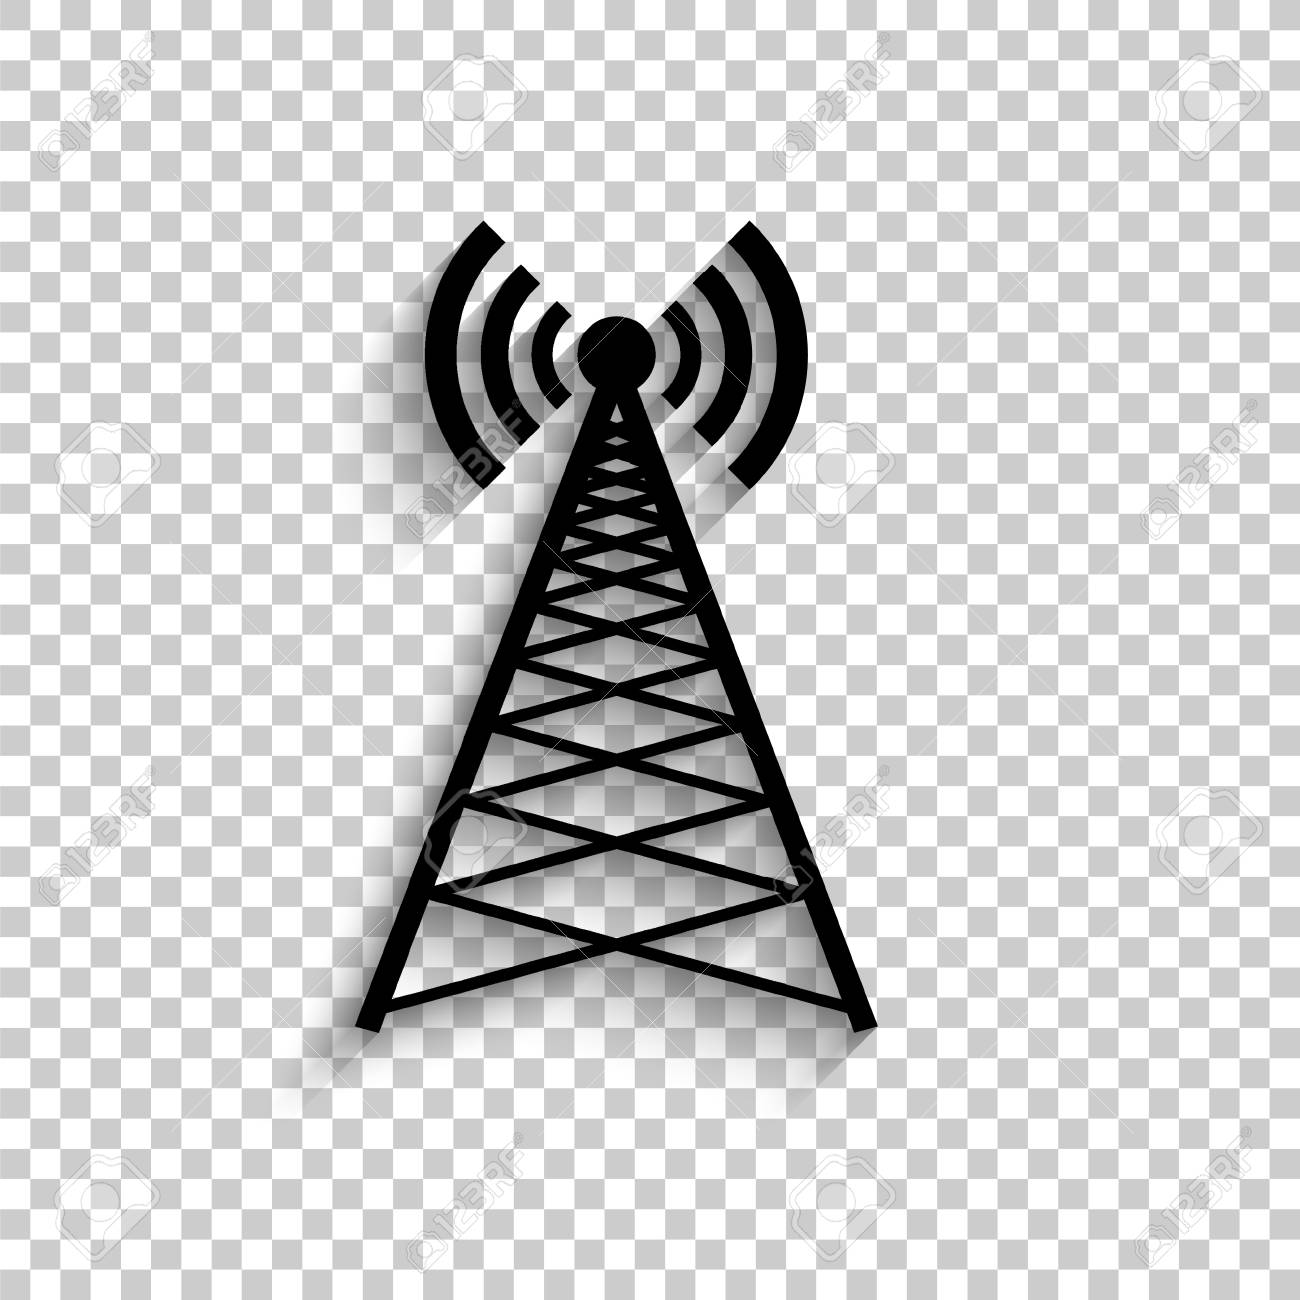 cell phone tower - black vector icon with shadow royalty free cliparts,  vectors, and stock illustration. image 116587576.  123rf